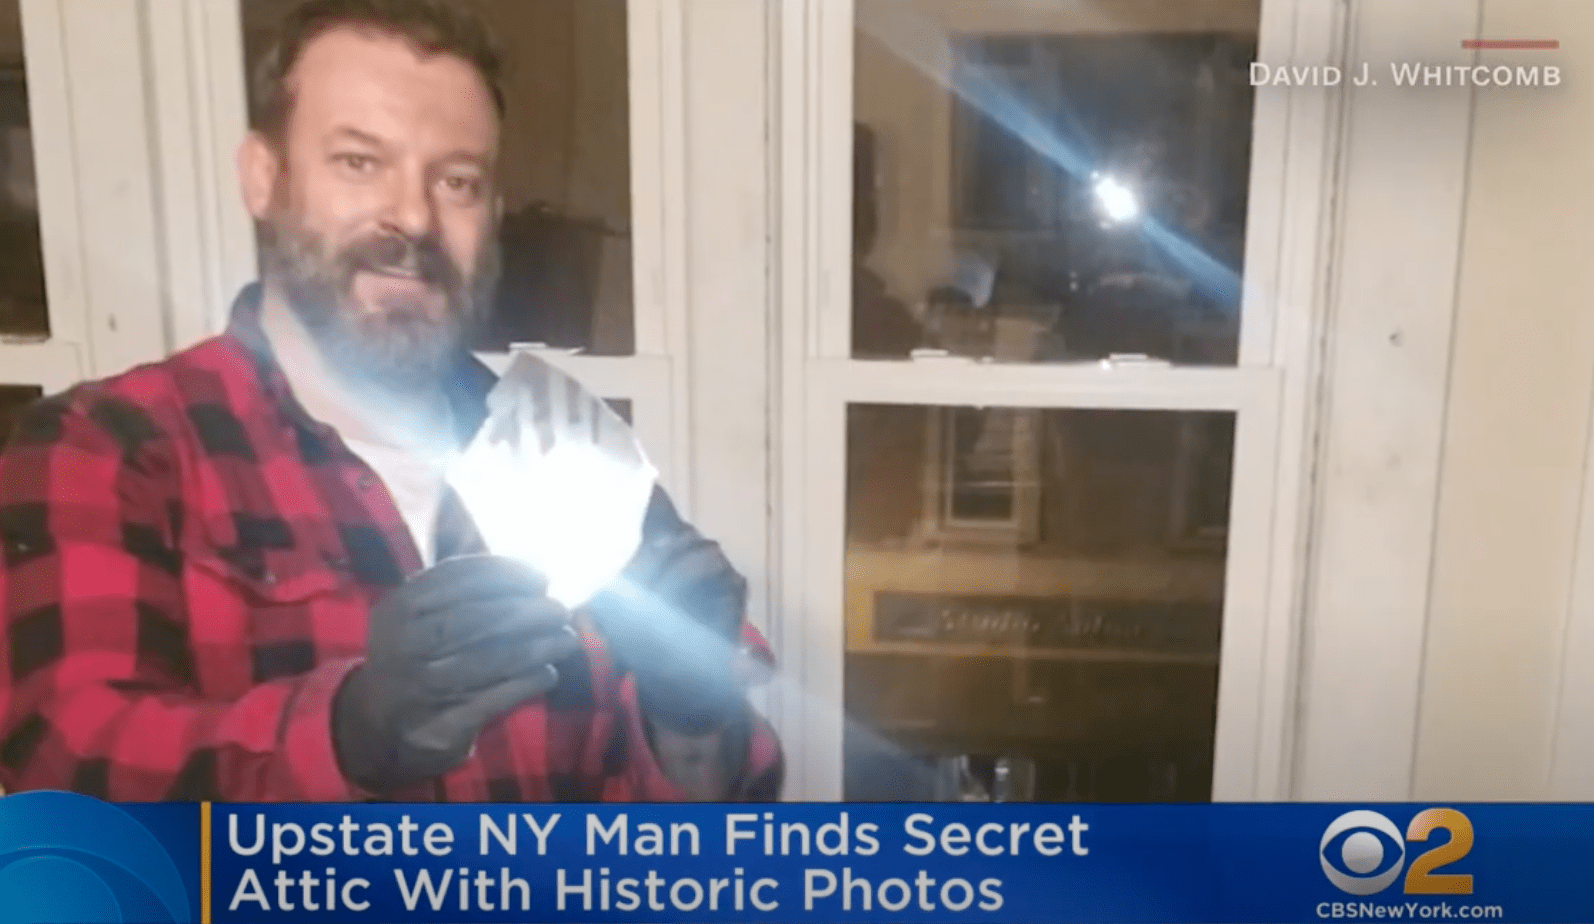 A man who discovered hidden treasures in his attic holds up a glass negative | Photo: Youtube/CBS New York